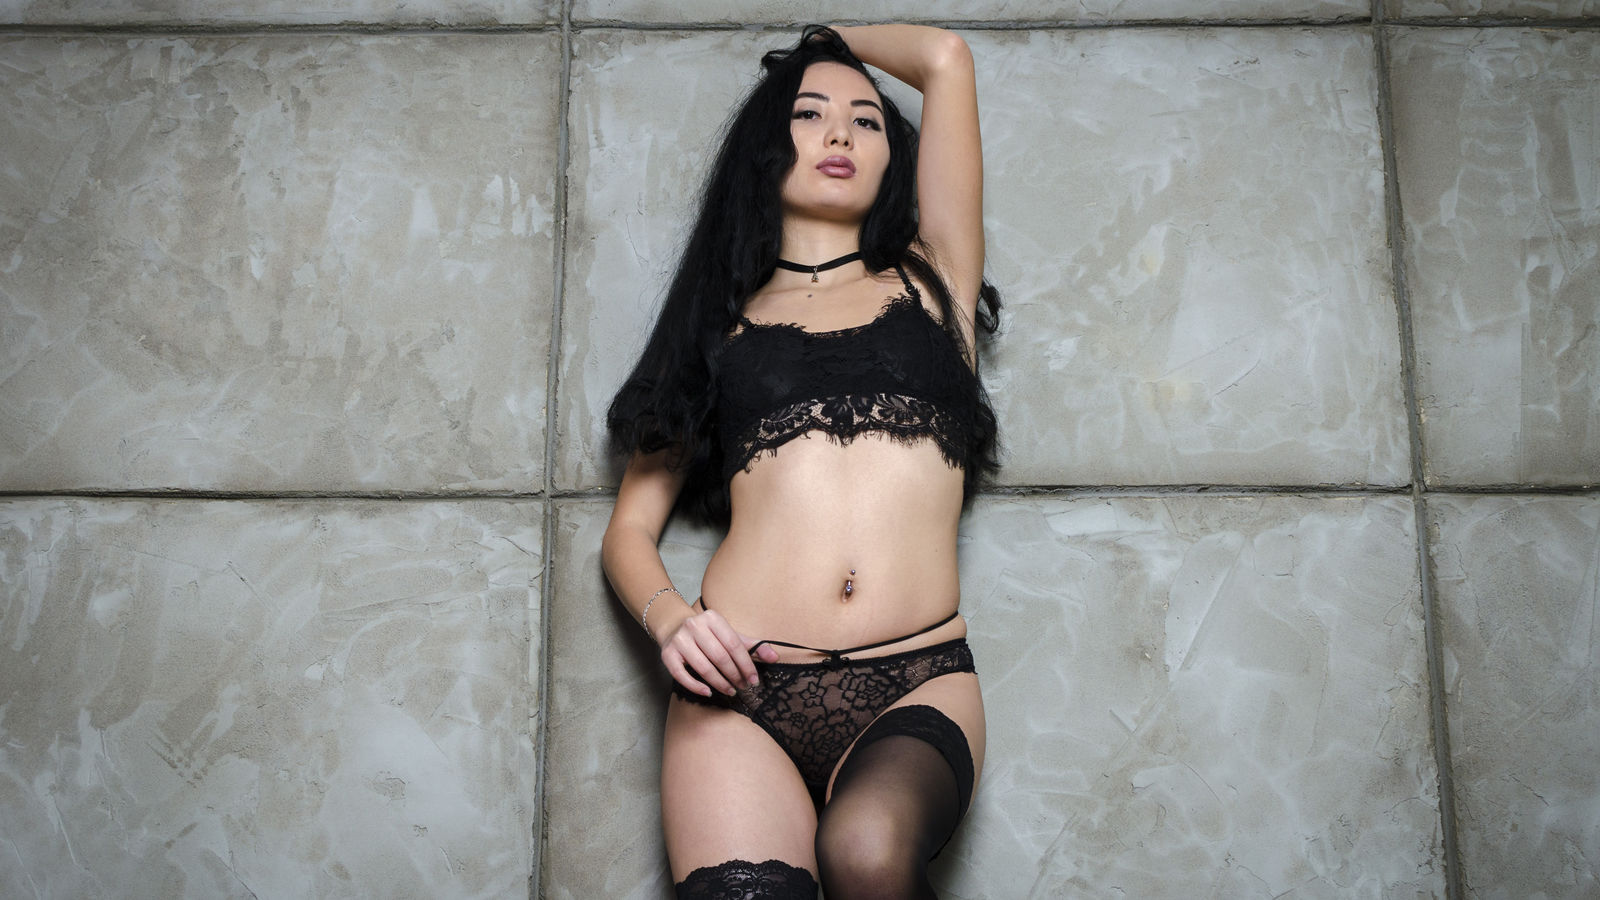 Live Sex Cam Shows OnXcams With Stunning Sexy Girls